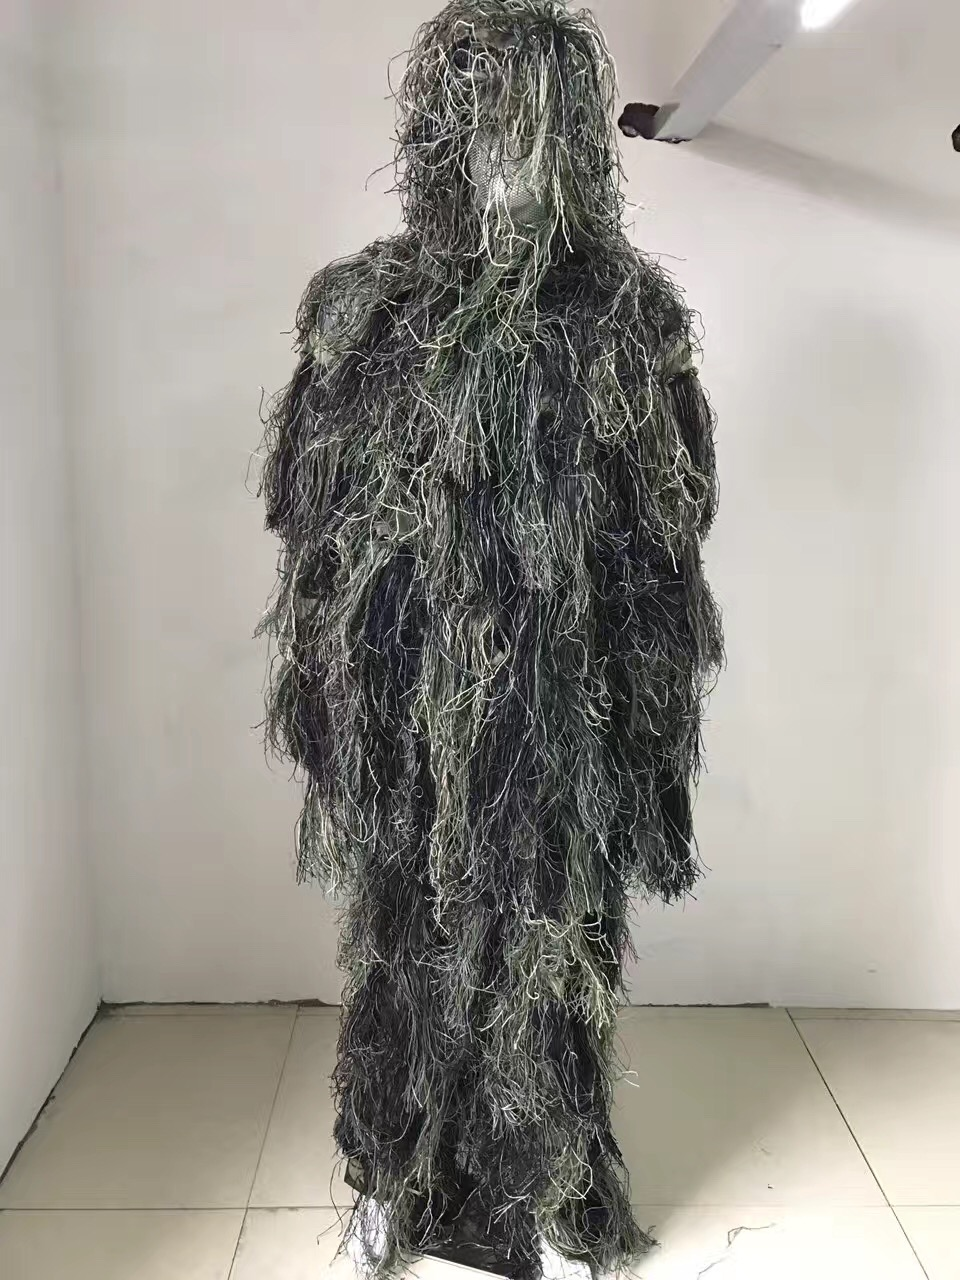 Ghillie Suit CS Camouflage Suits Set 3D Bionic Leaf Hunting Disguise Uniform Sniper Jungle Military Train Hunting Cloth Woodland 3d leaf camouflage tactical military airsoft paintball hunting camo bionic disguise sniper archery ghillie suit disguise uniform